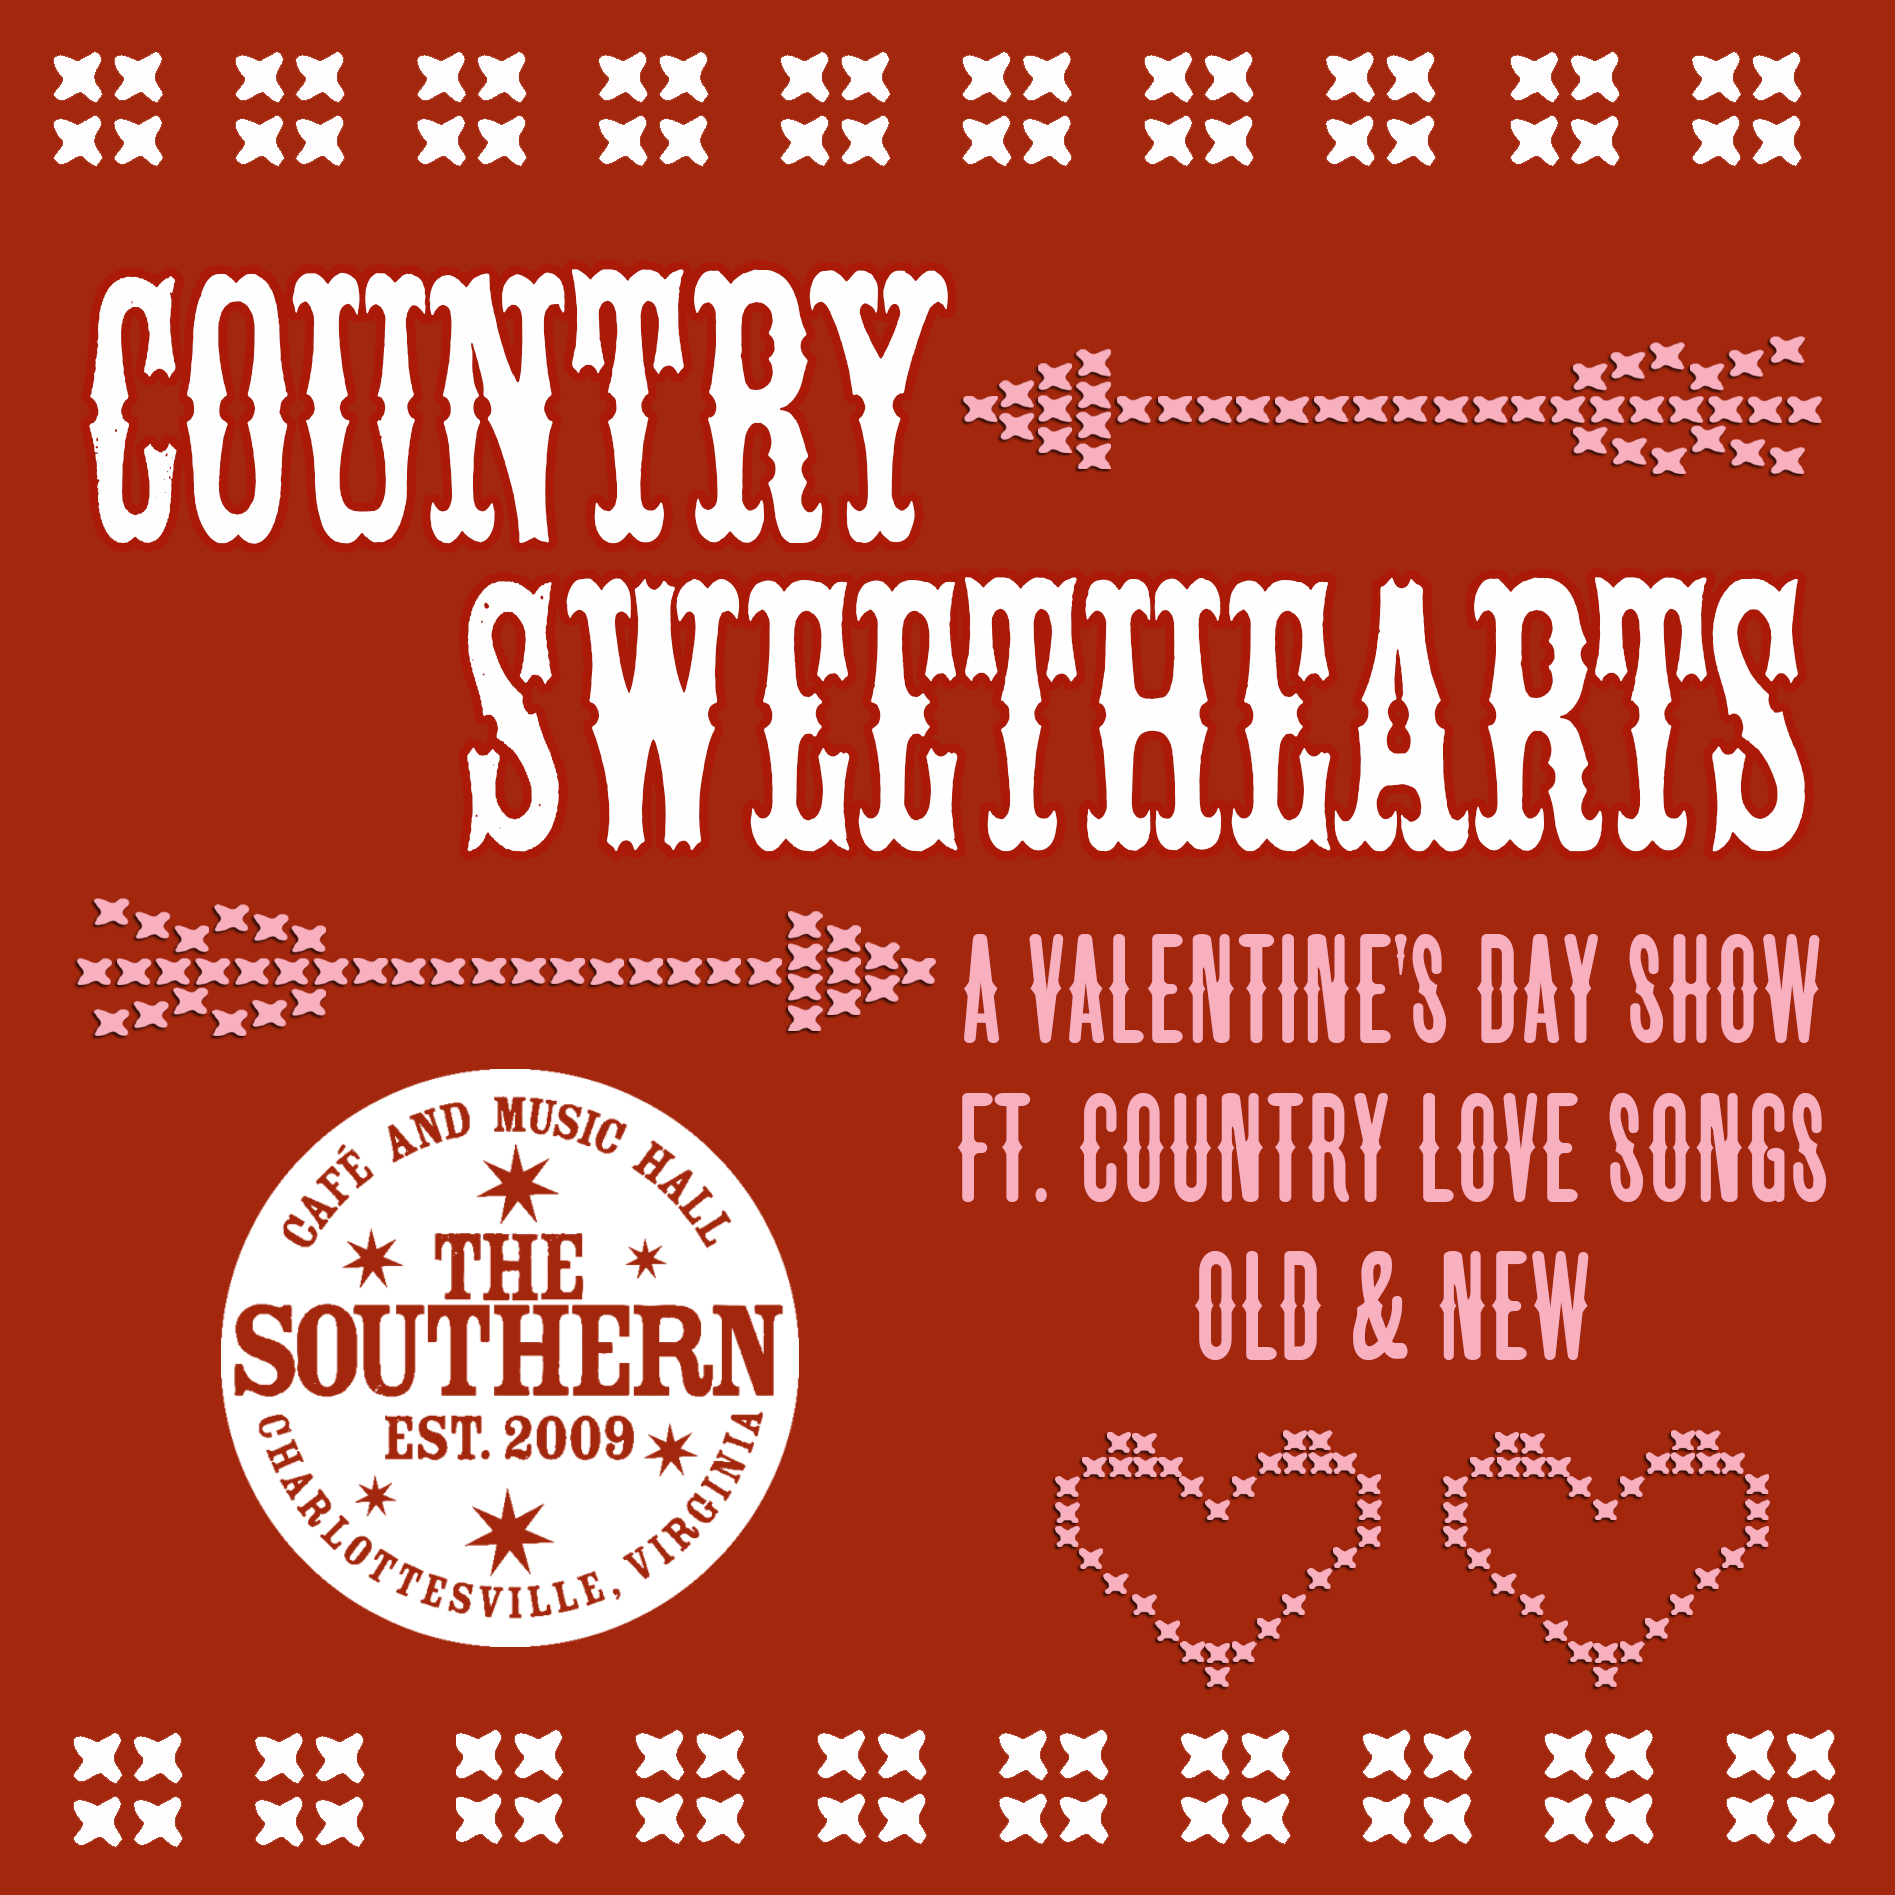 CountrySweethearts_TN2.png